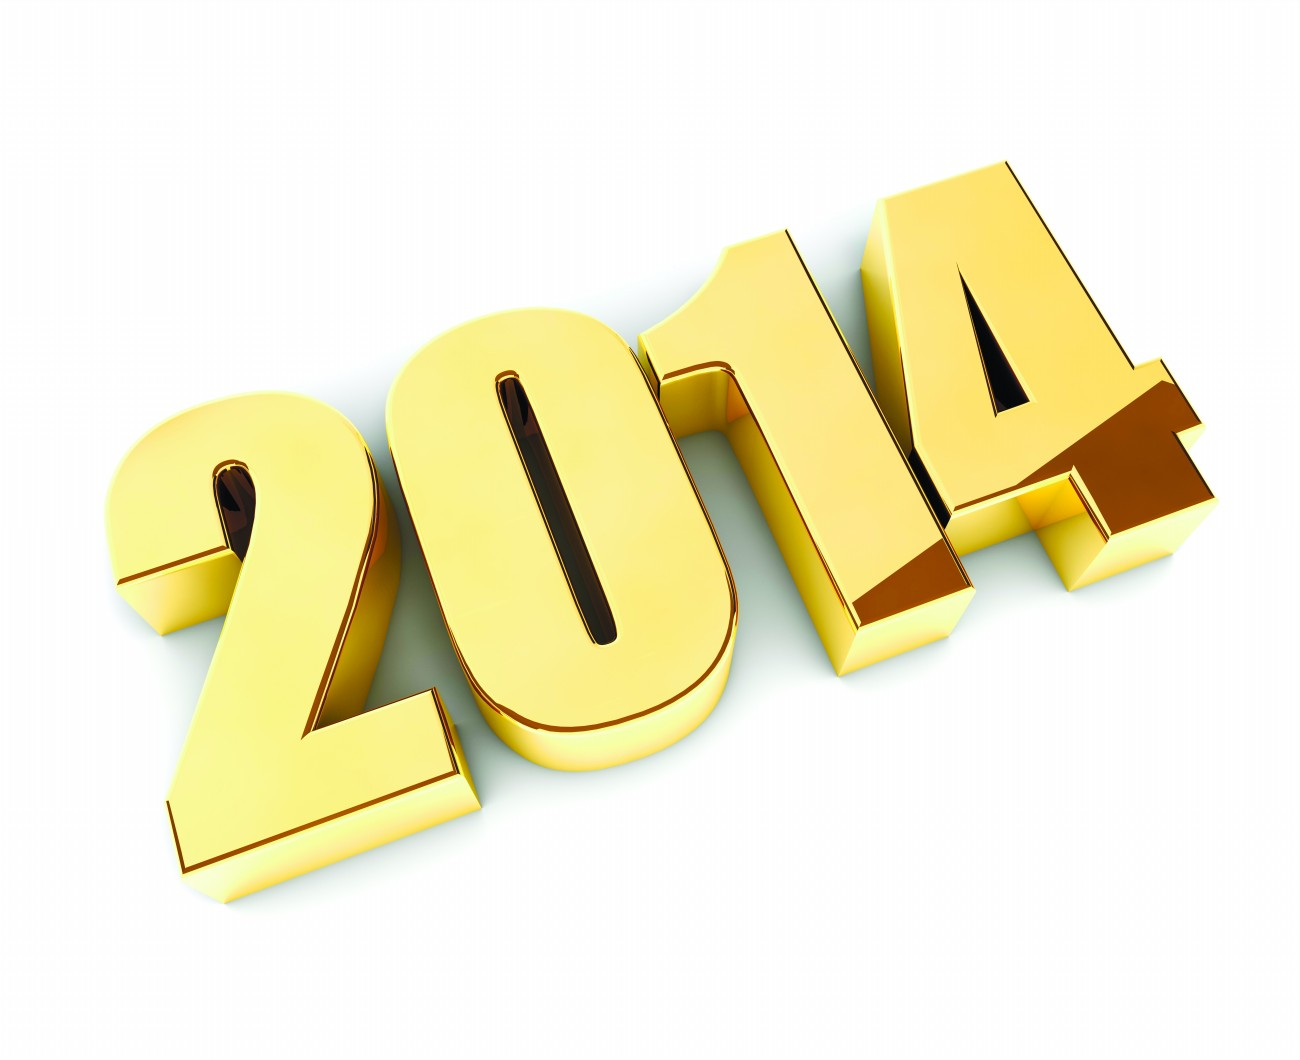 2014 numbers amp happy 2014 new year images wallpapers � elsoar